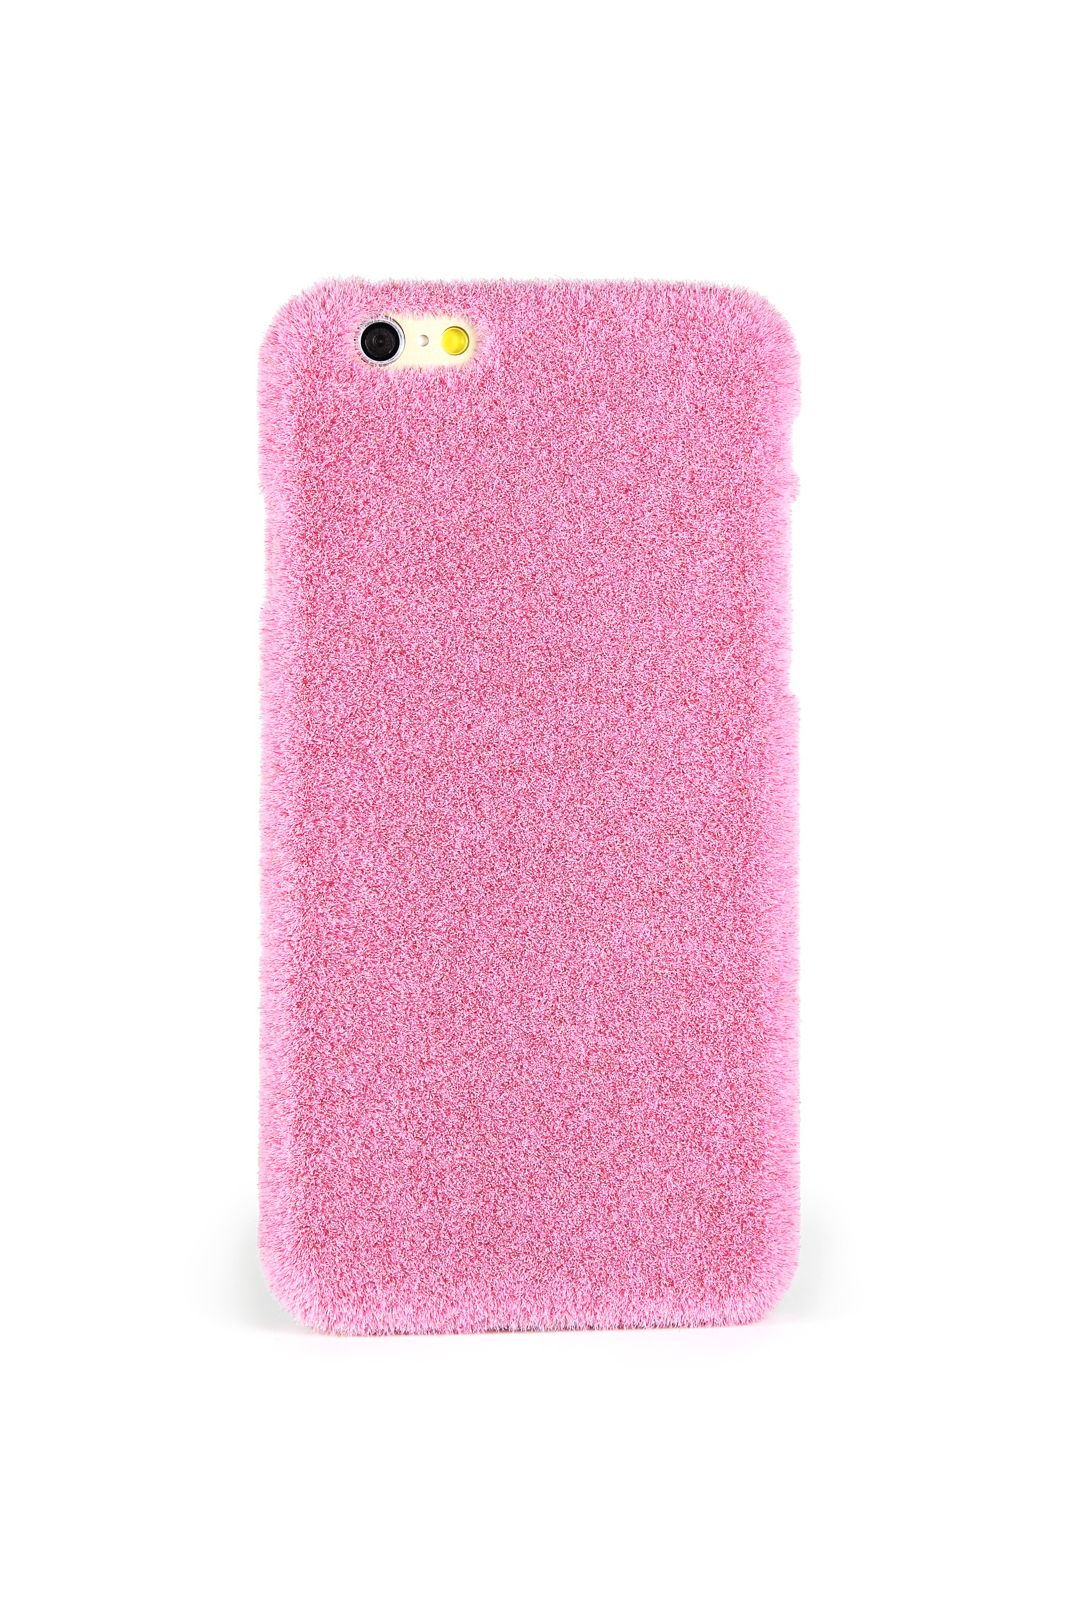 online store cd0d0 3e06a Cute Phone Cases 2016 - Best Cell Phone Covers